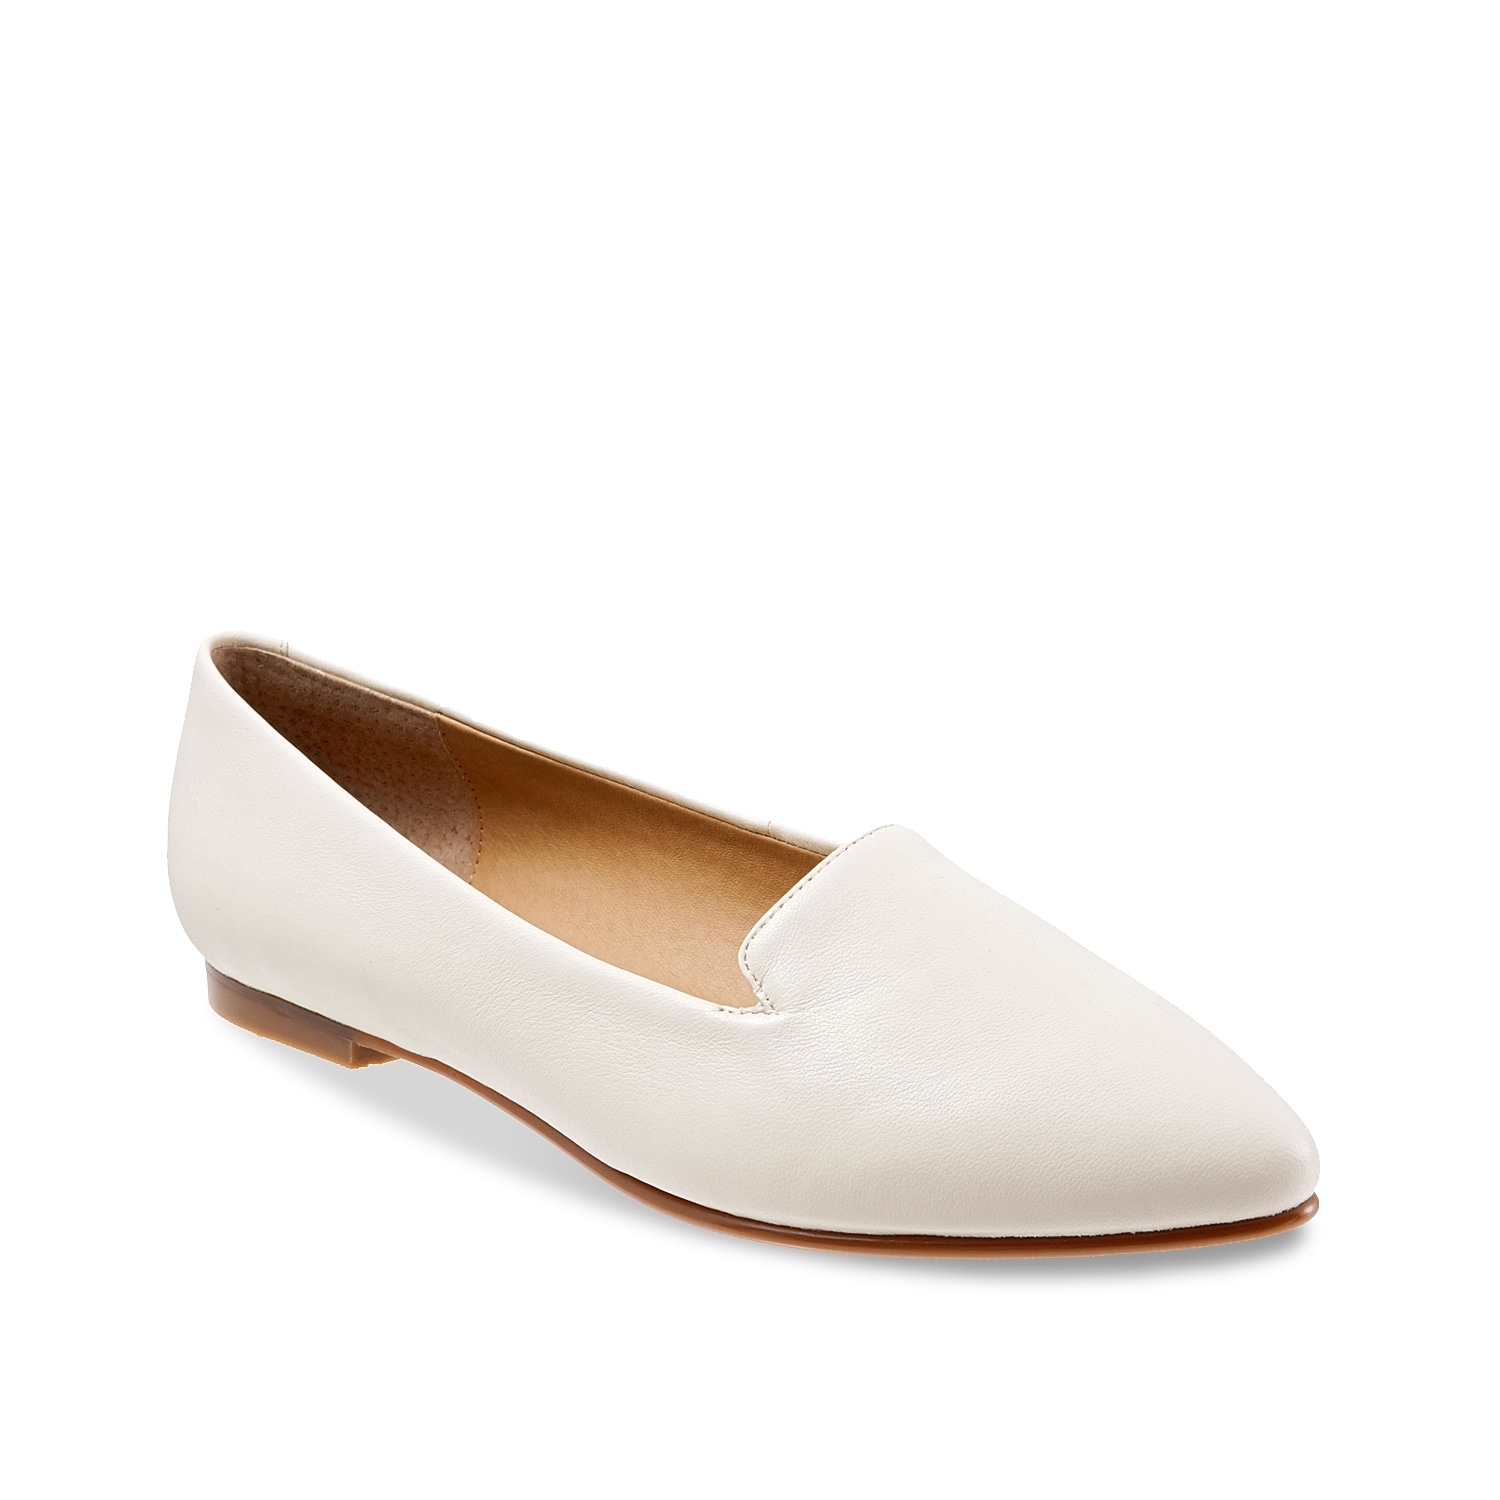 Get your feet pampered on the go by donning this Trotters Harlowe flat. This loafer is enhanced with a cushioned footbed for excellent comfort and pointed silhouette for a classic appeal.